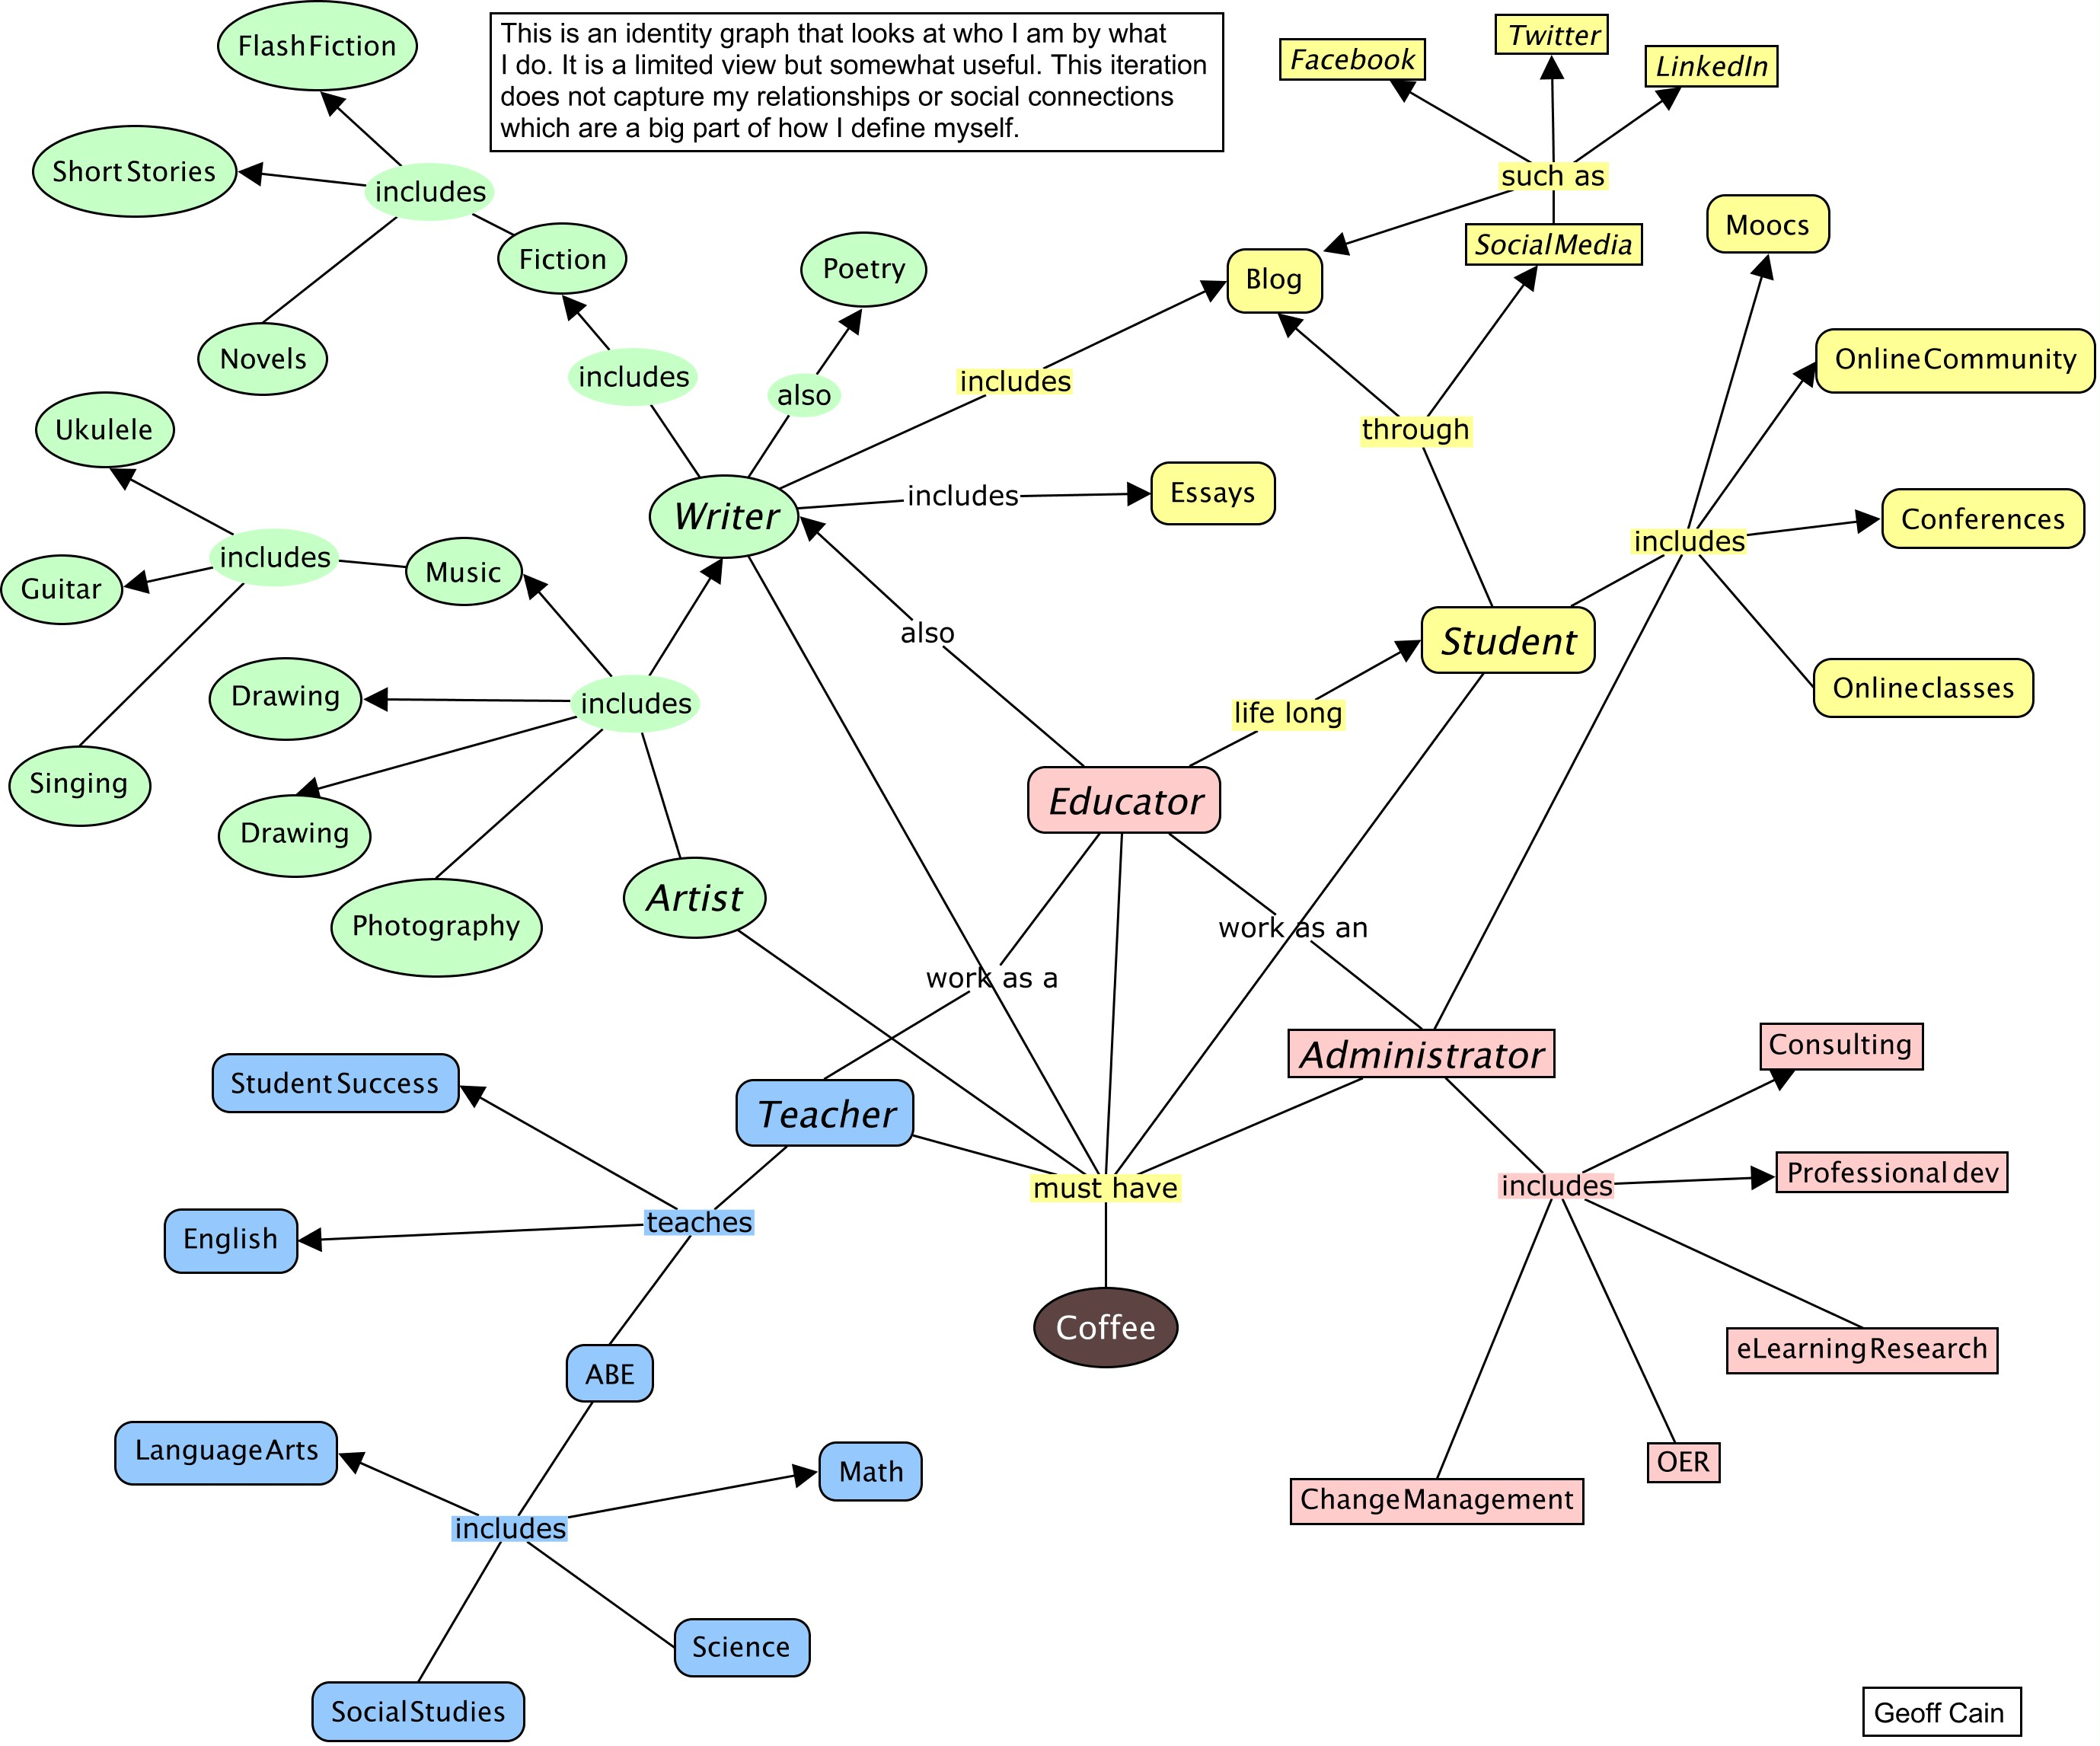 Image of a concept map that defines Geoff Cain by what he does